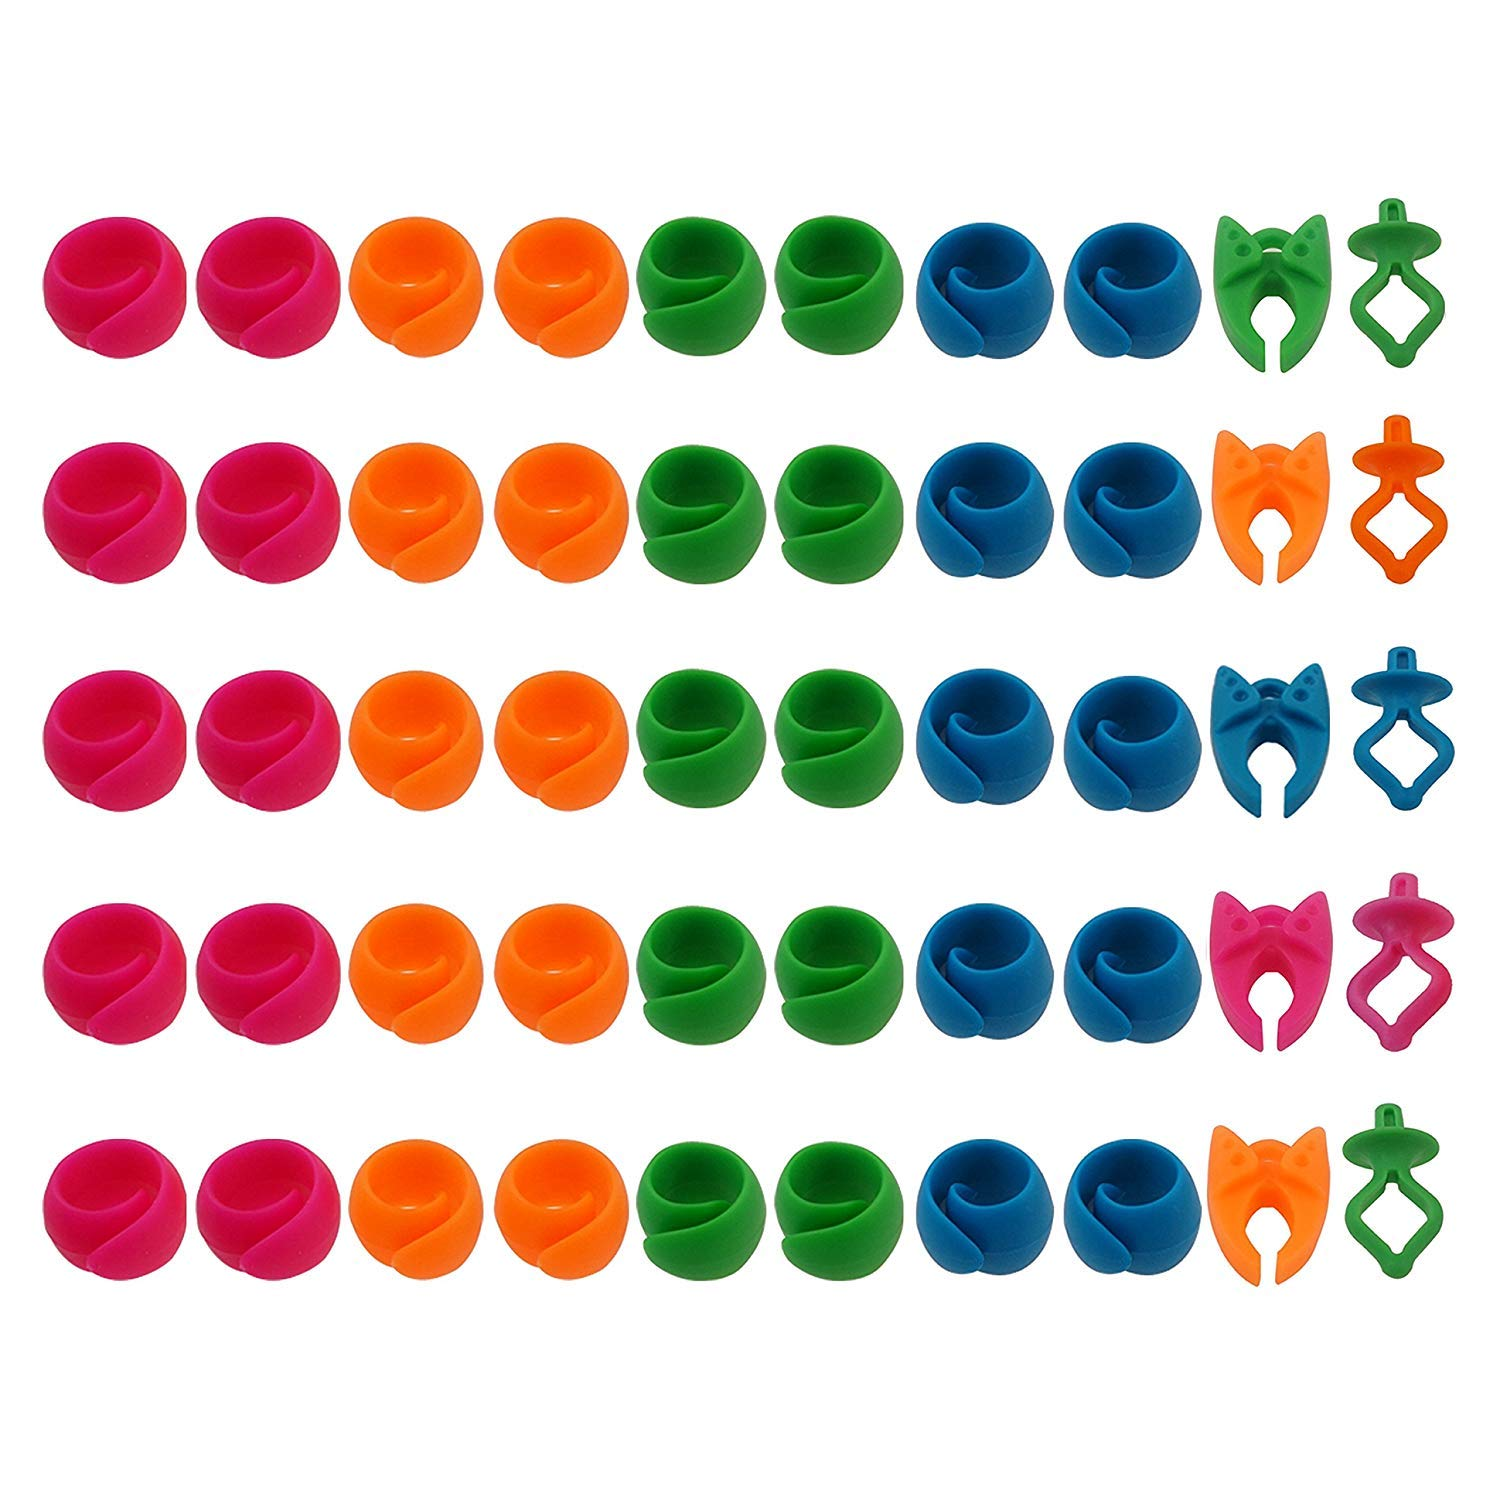 No Loose Ends for Sewing and Embroidery Machine Thread Spools 40 Thread Spool Huggers + 5 Bobbin Holders + 5 Bobbin Clamps EAST-F 50pcs Mix NOTIONS - Prevent Thread Tails from Unwinding